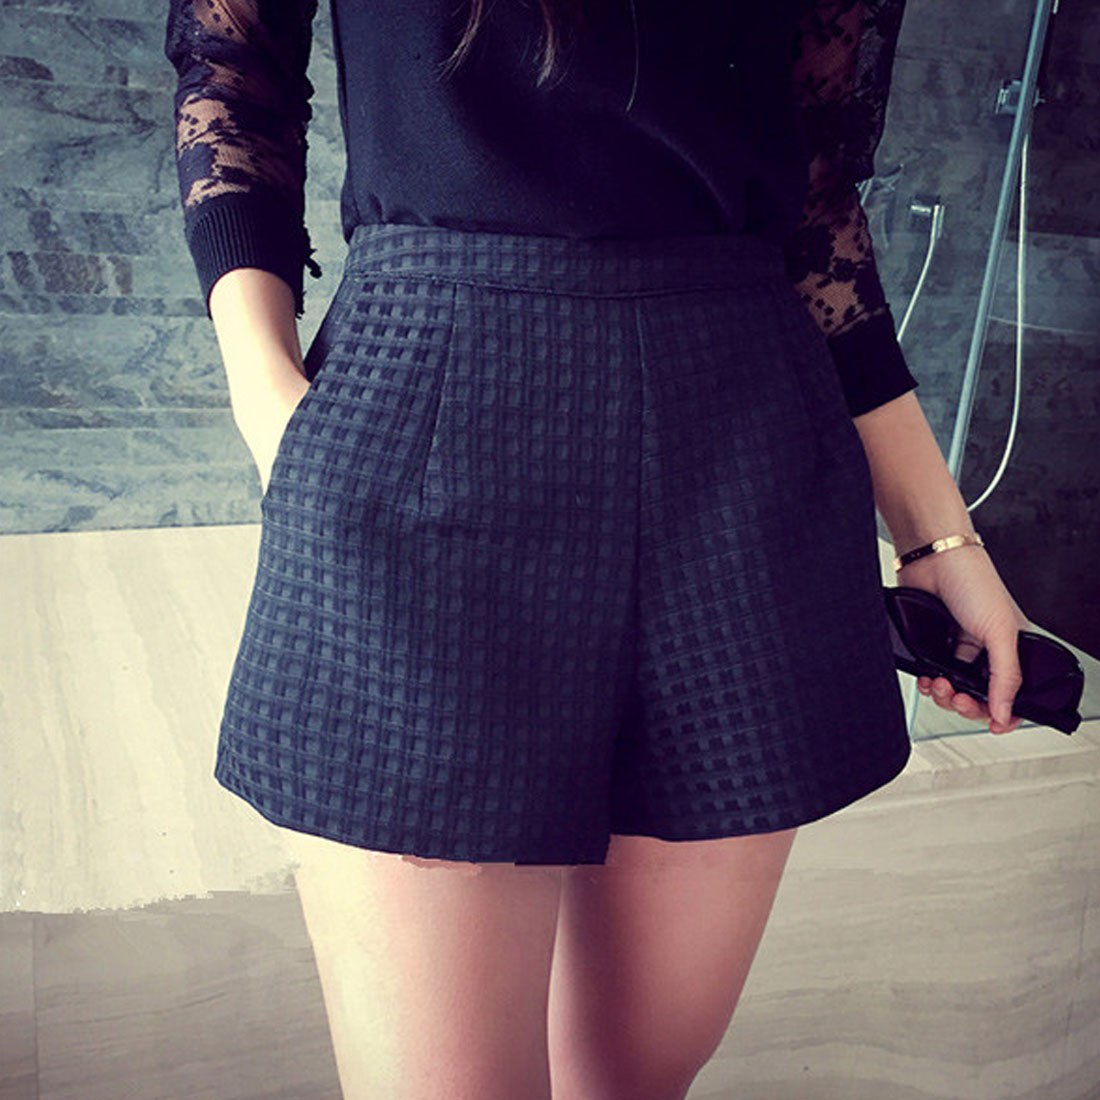 New Summer Style Fashion Casual High Waist Shorts Black Gray White Casual Vintage Women Short S 4XL Wide Leg Shorts in Shorts from Women 39 s Clothing